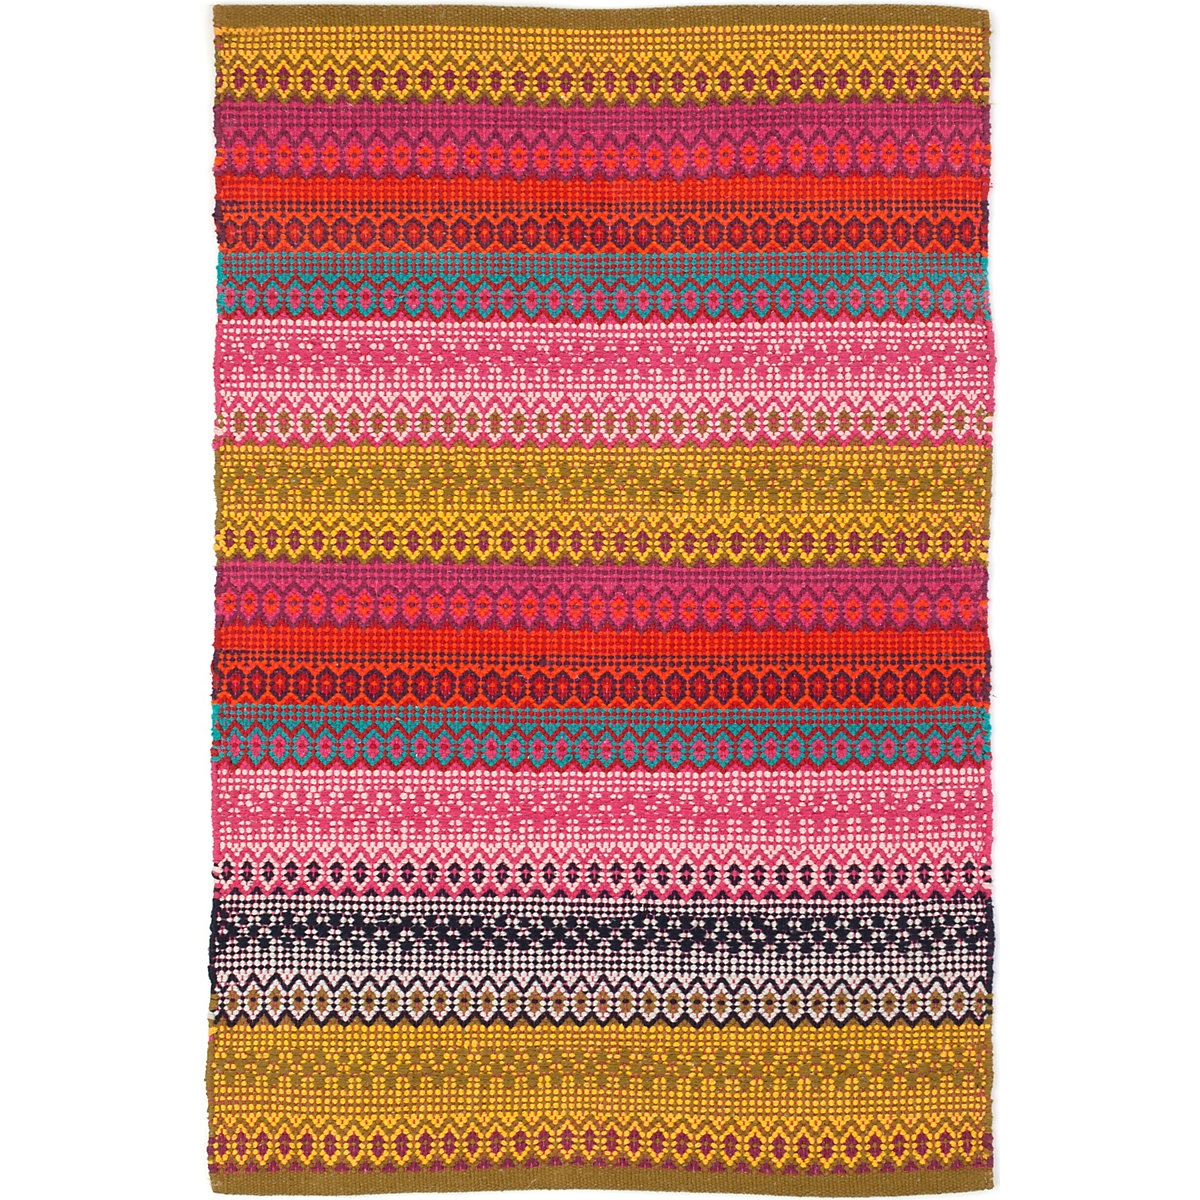 15 Best Cotton Rugs For Kitchen